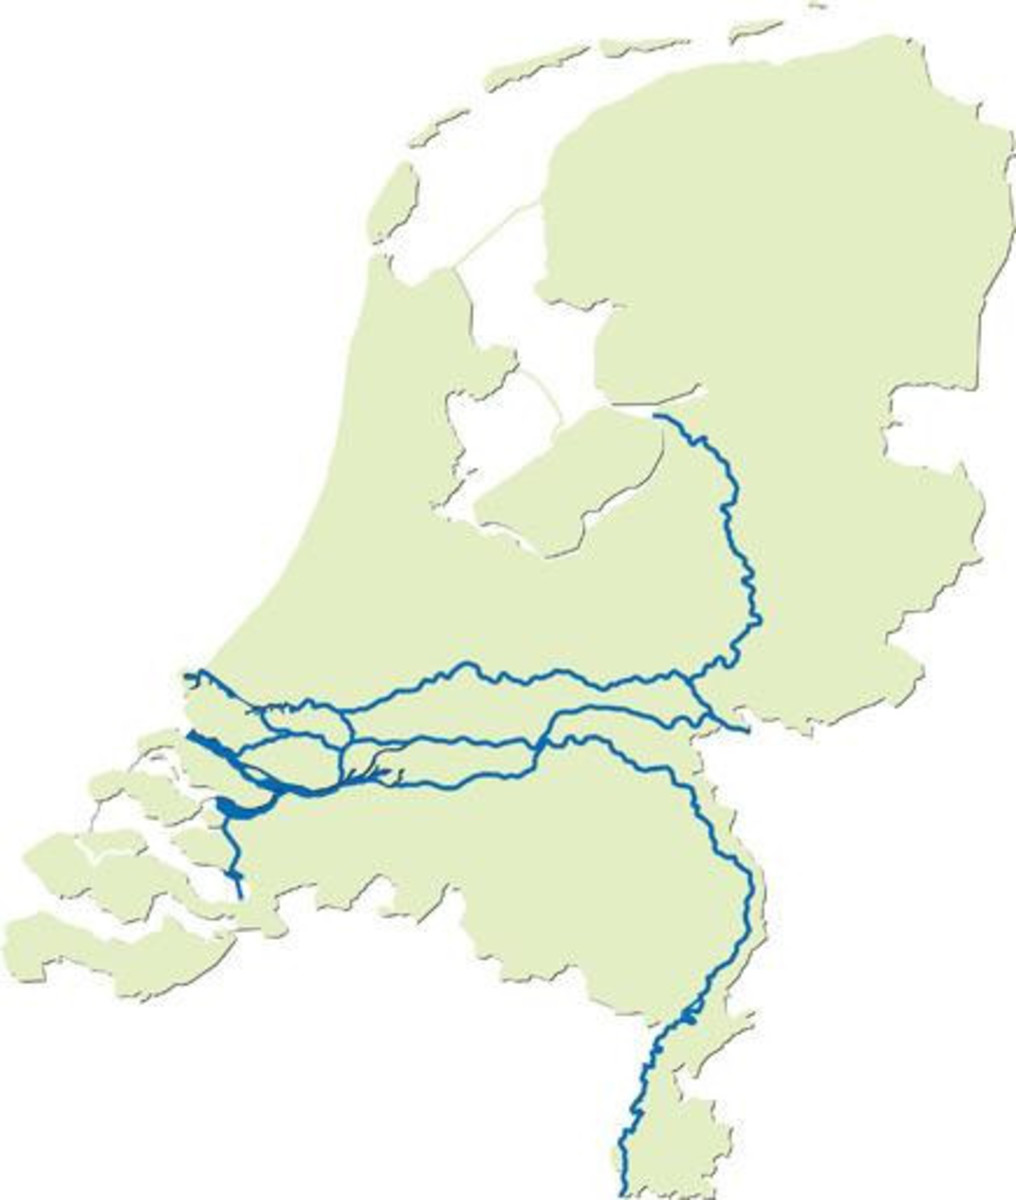 The Big Rivers in the Netherlands